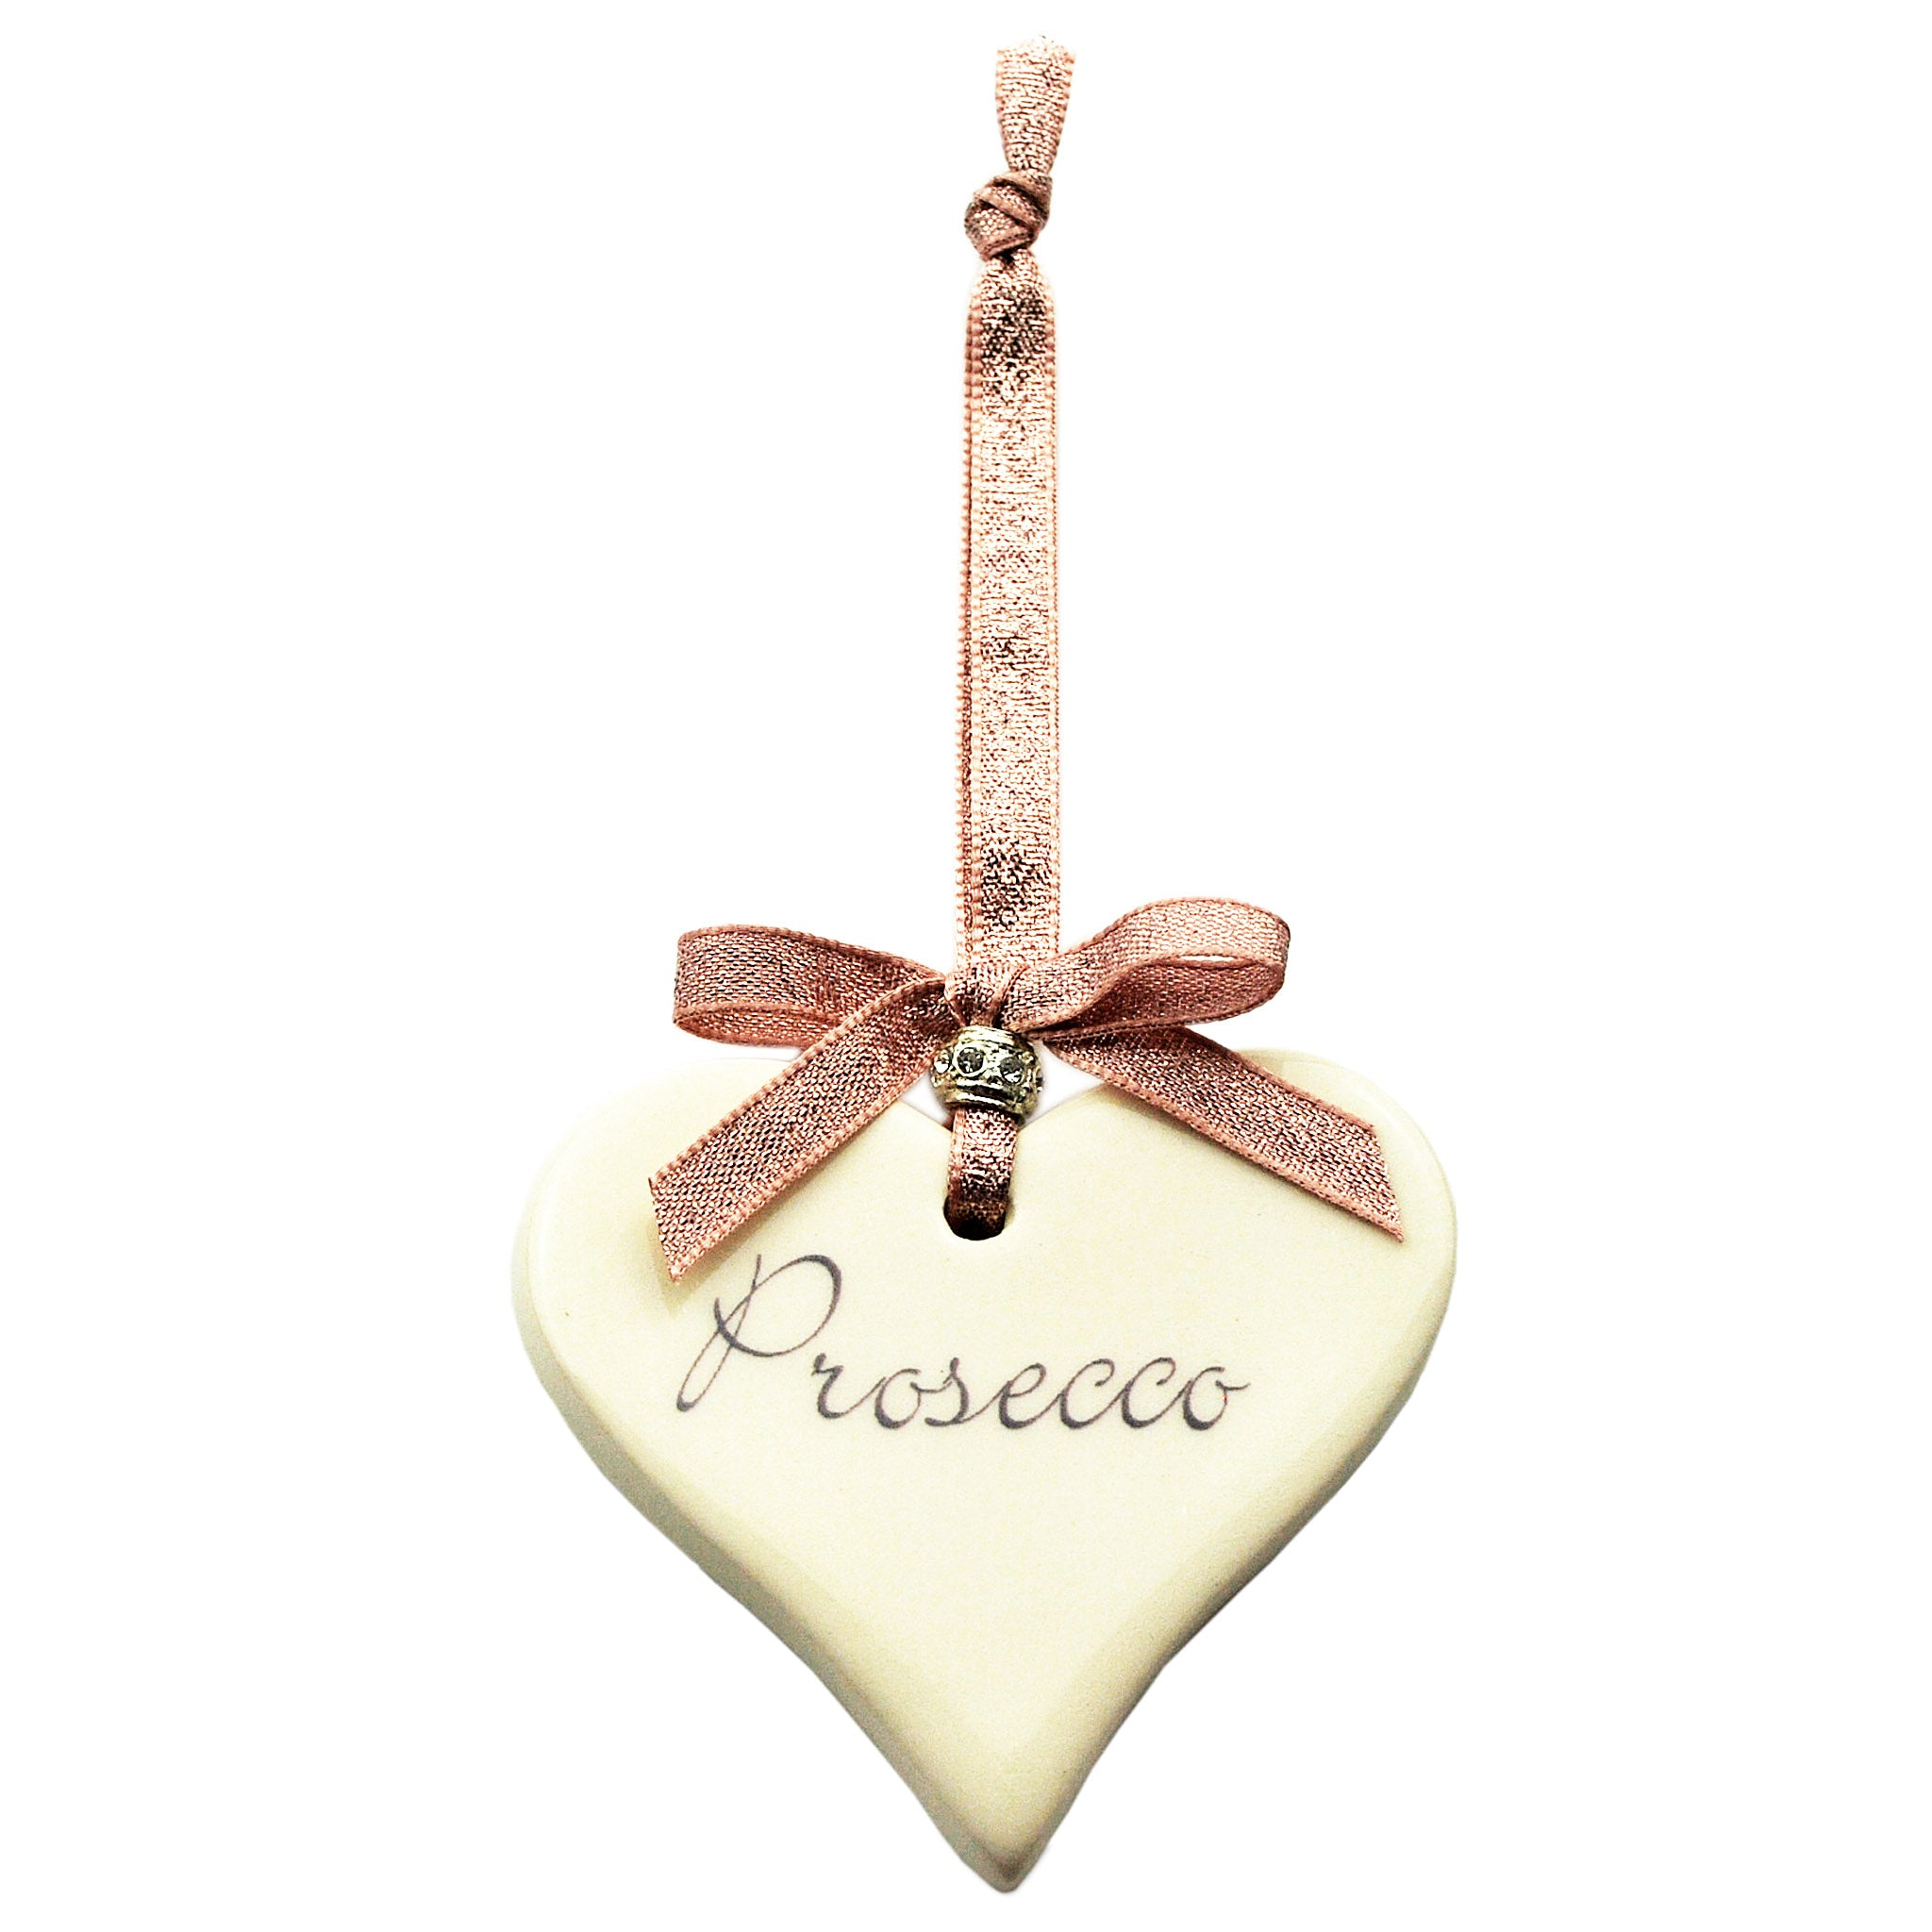 Rose Gold Prosecco Ceramic Heart Decoration perfect gift idea for Mother's Day